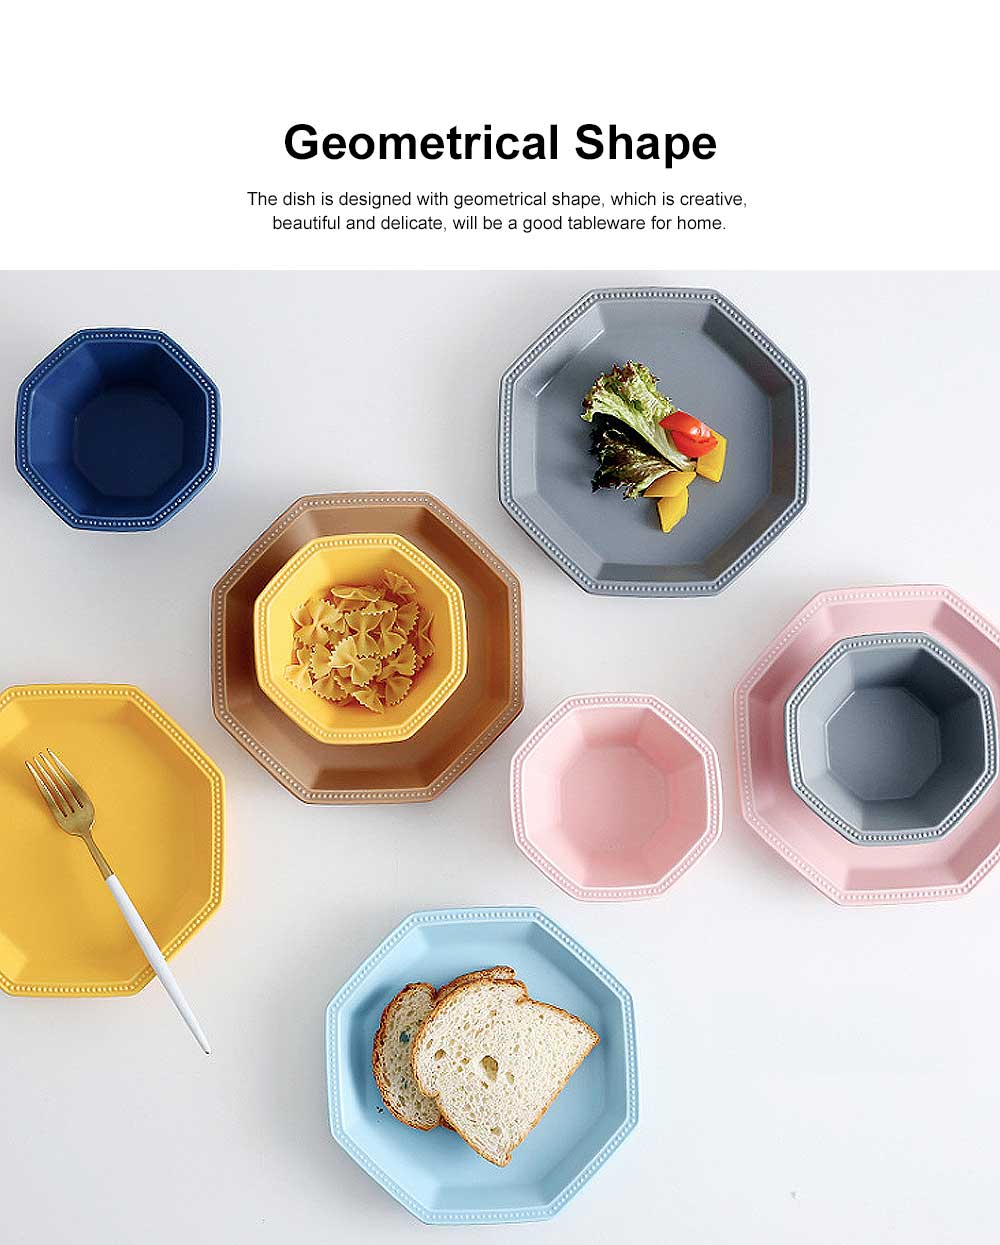 Geometrical Dish Porcelain Material Tray for Home Hotel Foods Hollow-ware Elegant Plate 2